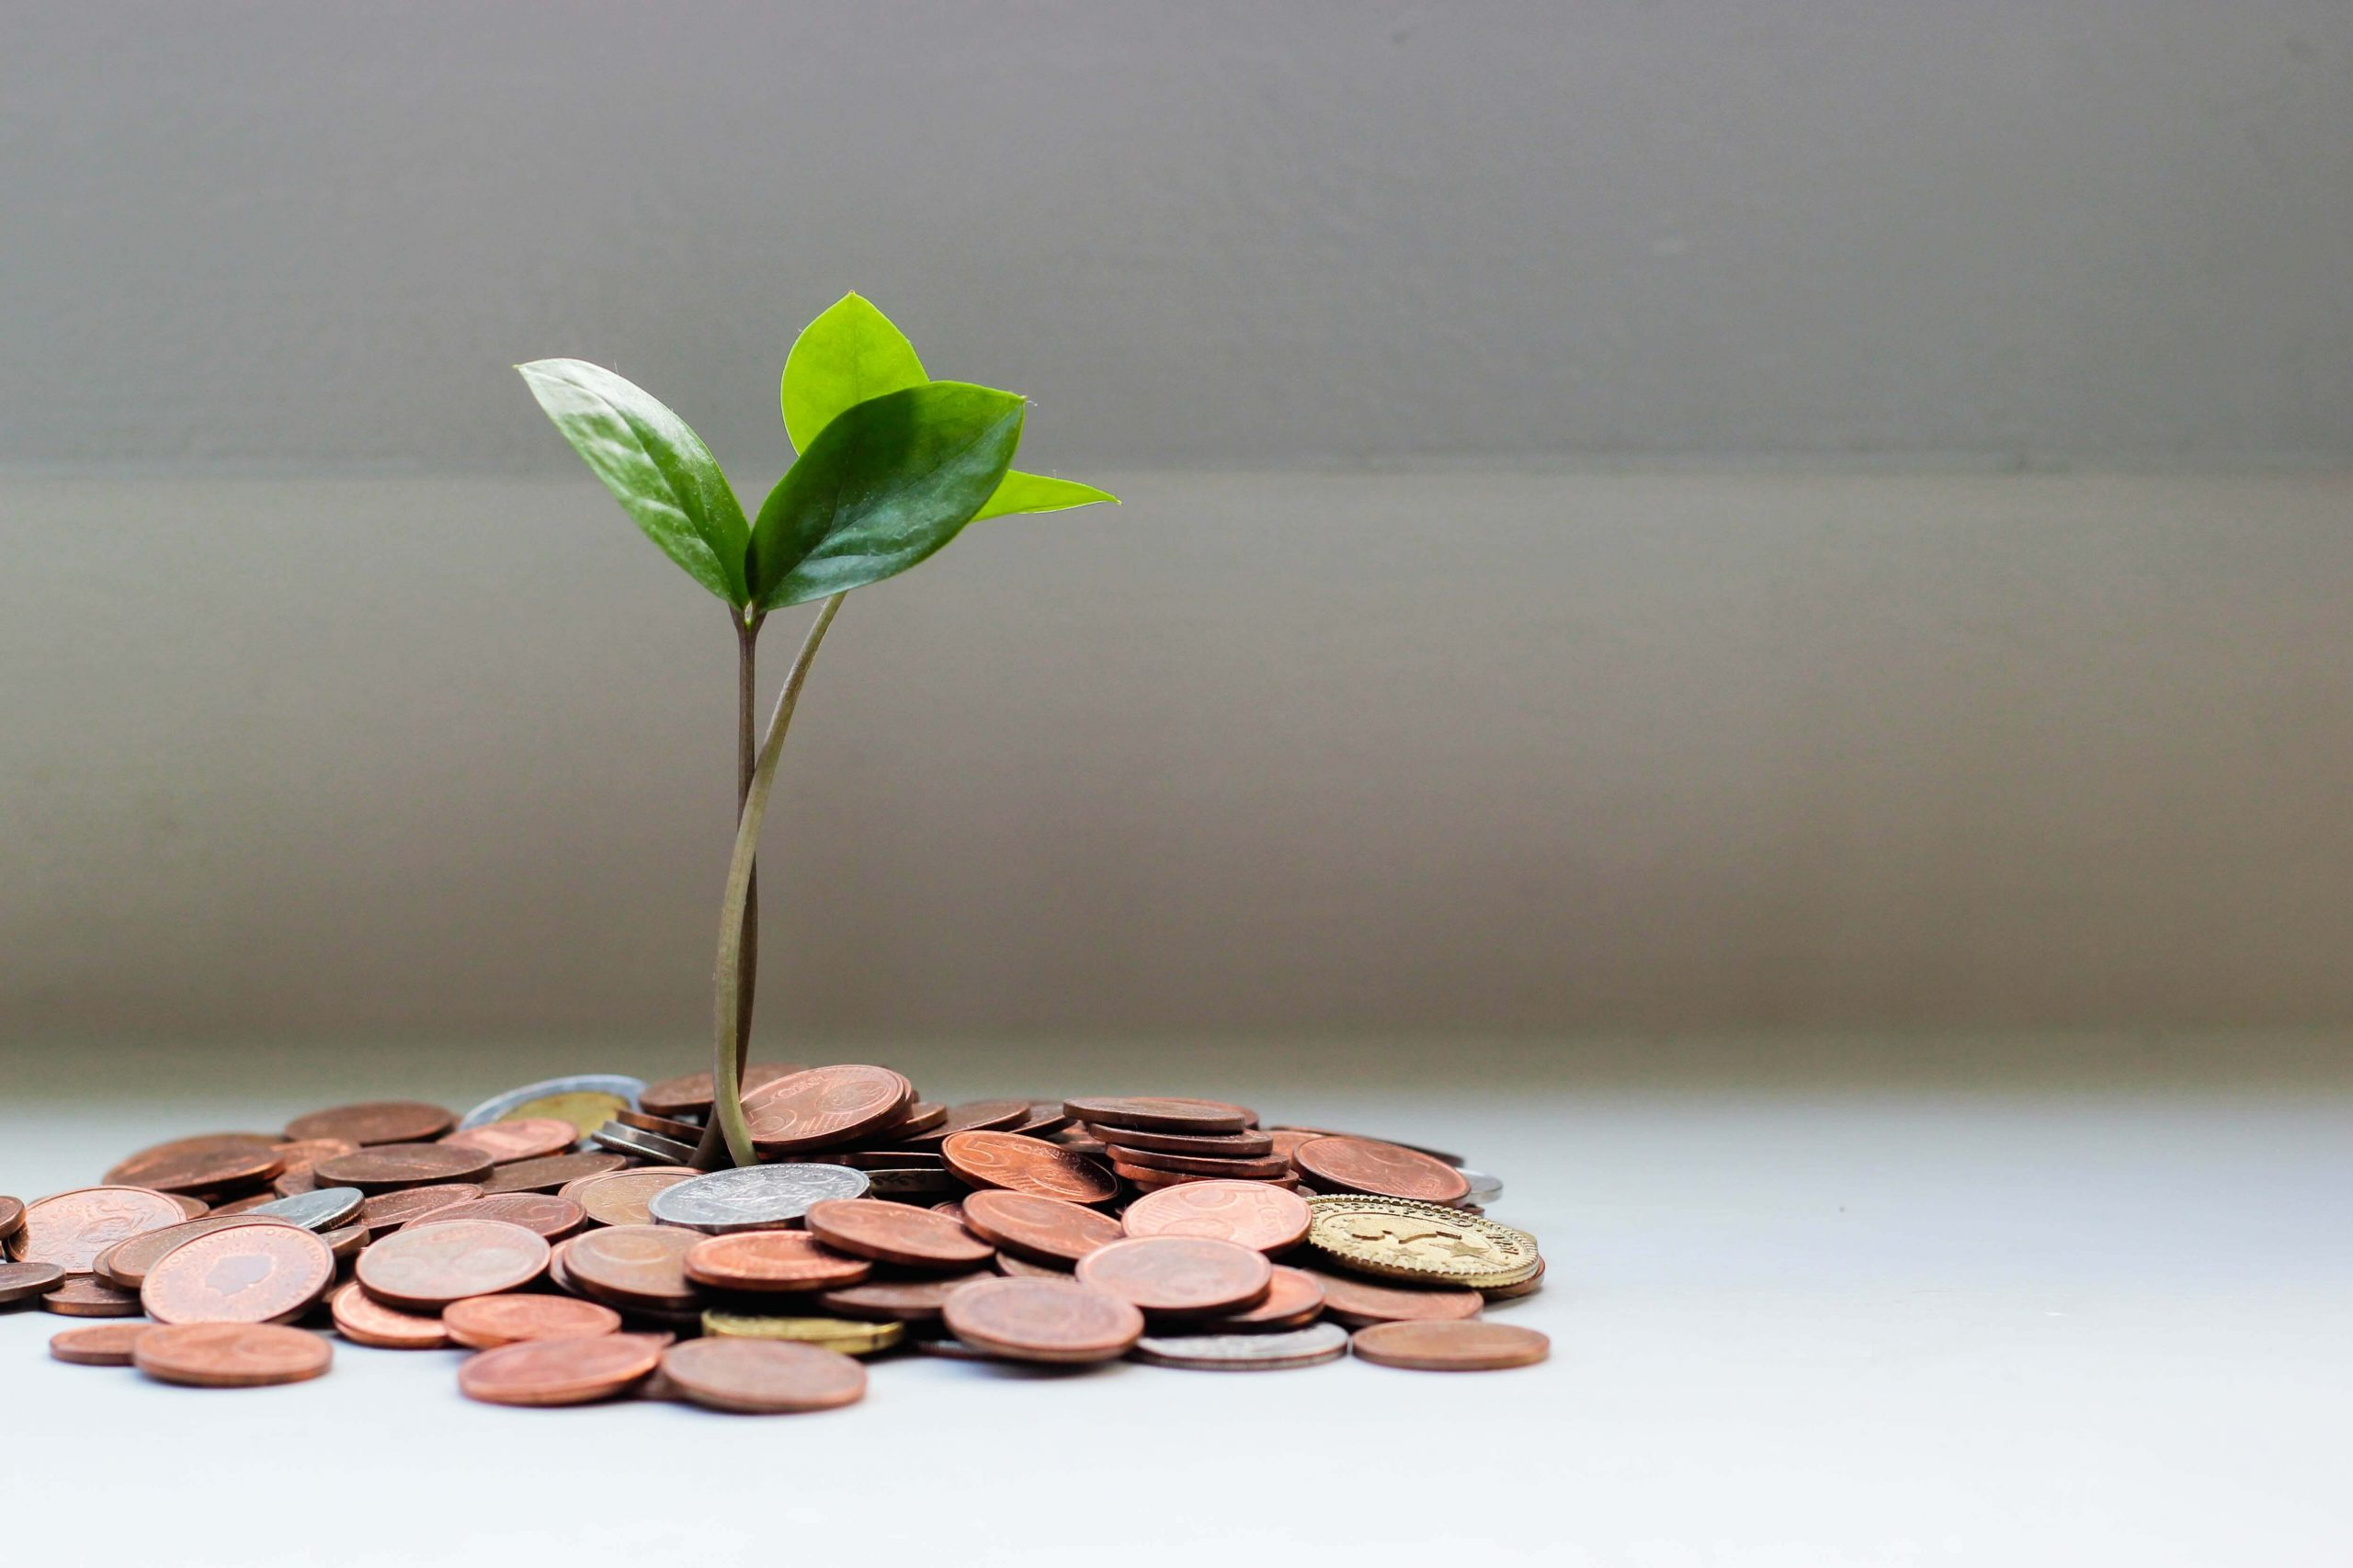 small plant growing out of pile of coins